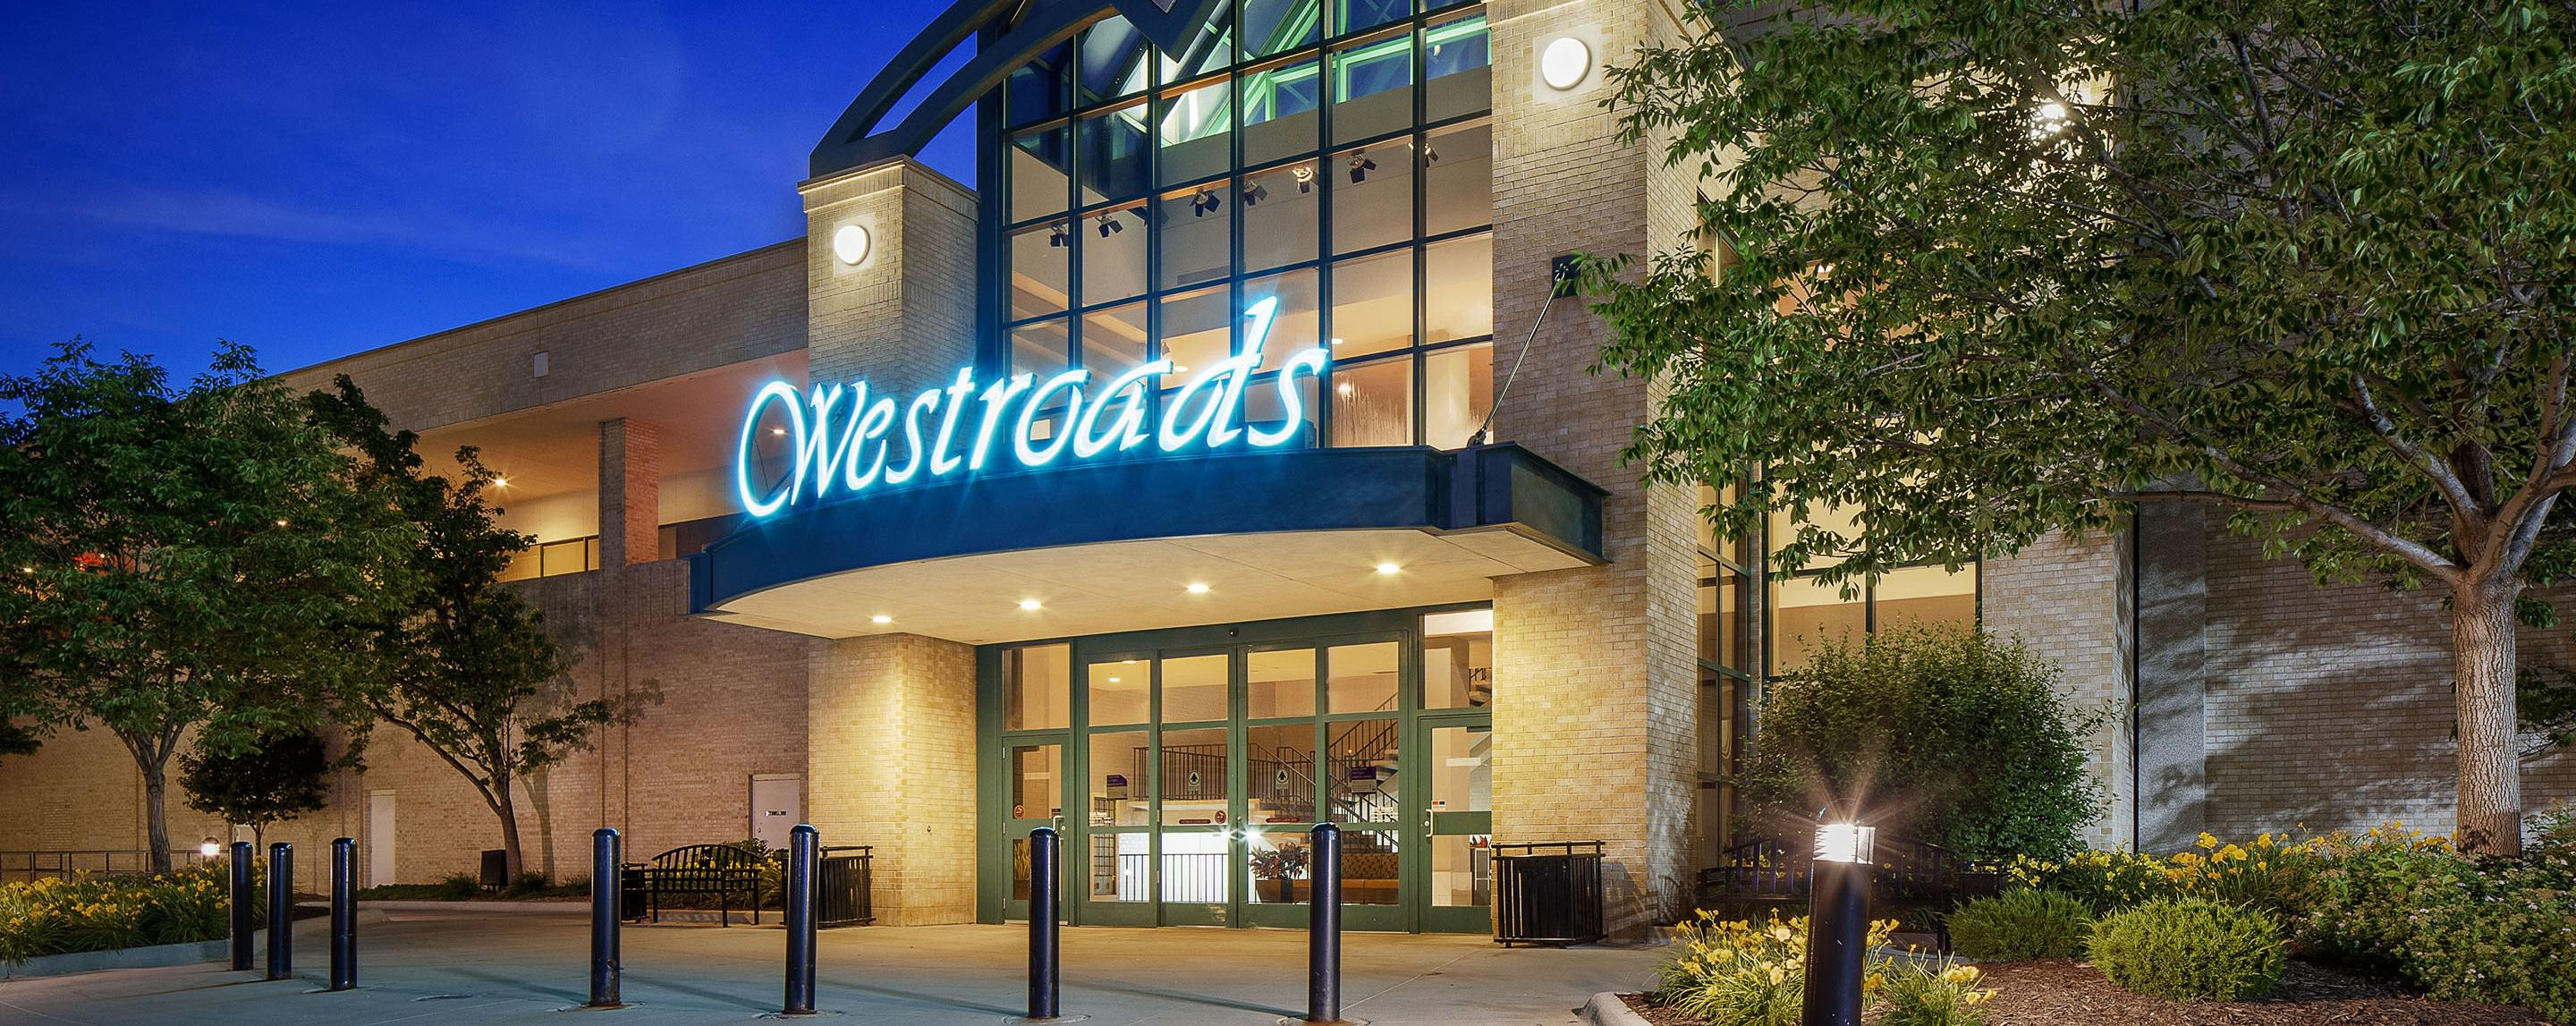 A large building with tall glass doors and a sign that says Westroads.